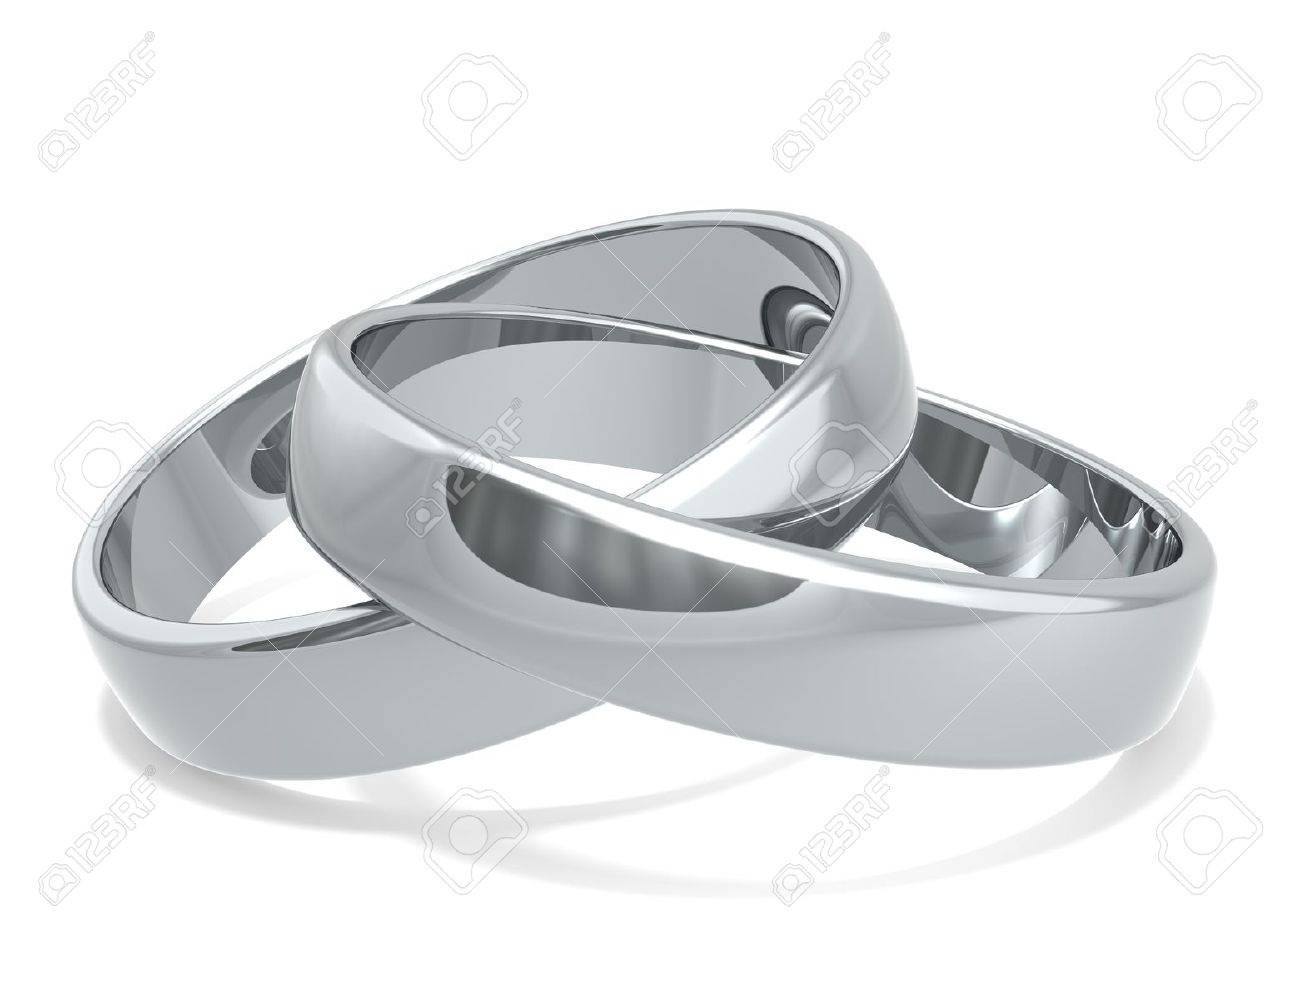 New Silver Wedding Anniversary Rings Photo Gallery – Alsayegh Inside Most Current 25 Year Wedding Anniversary Rings (View 14 of 25)